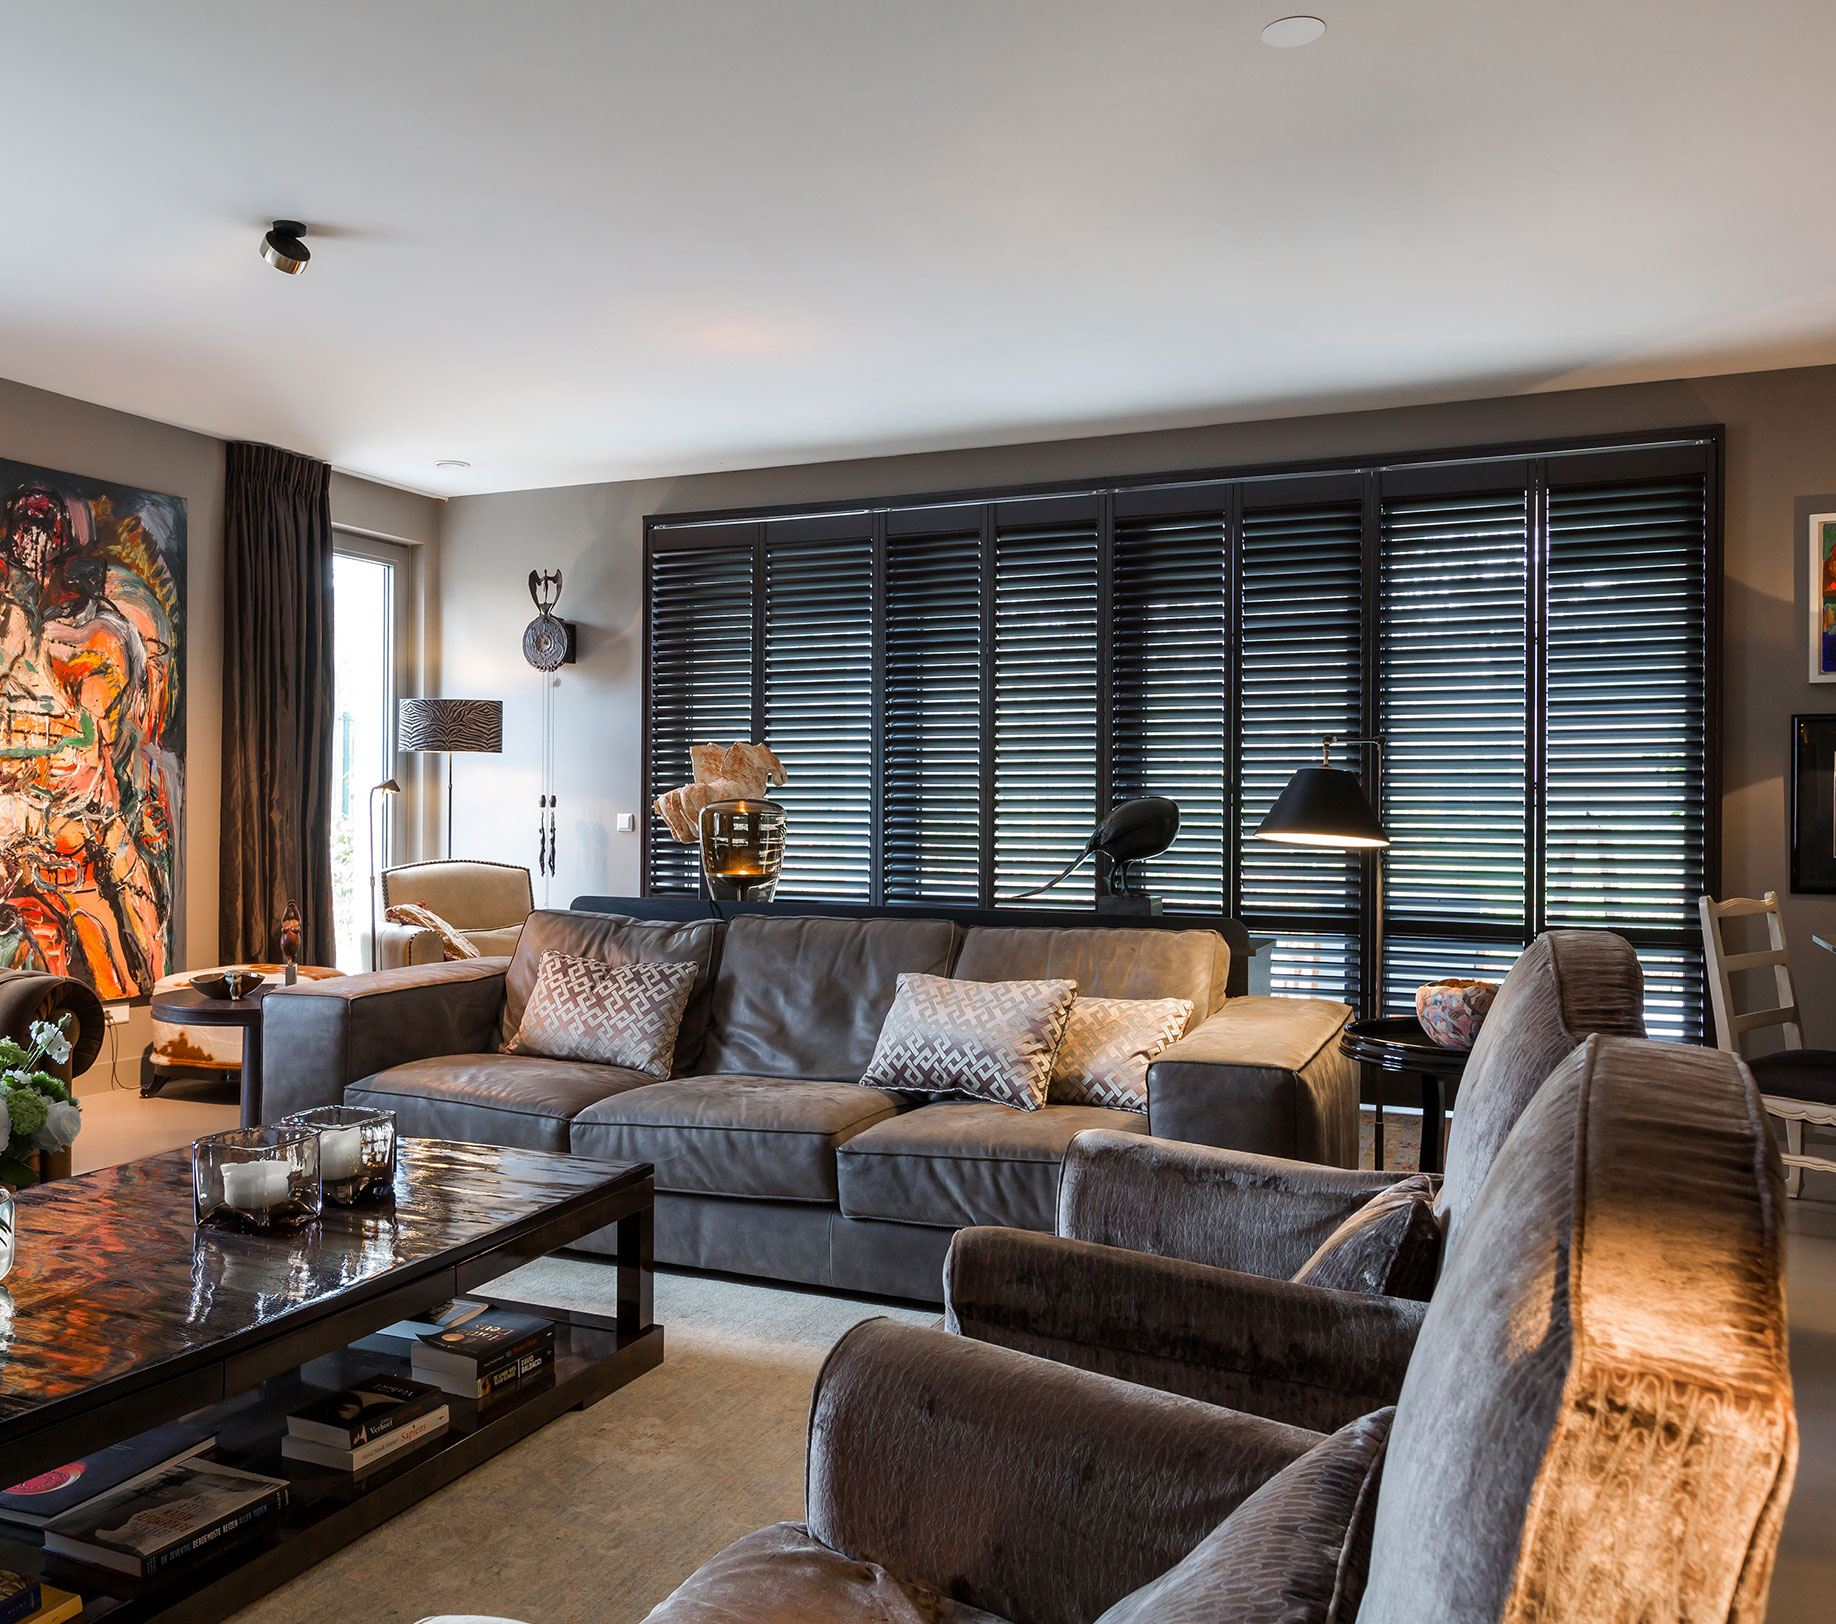 Raamstyling shutters inrichting woonkamer